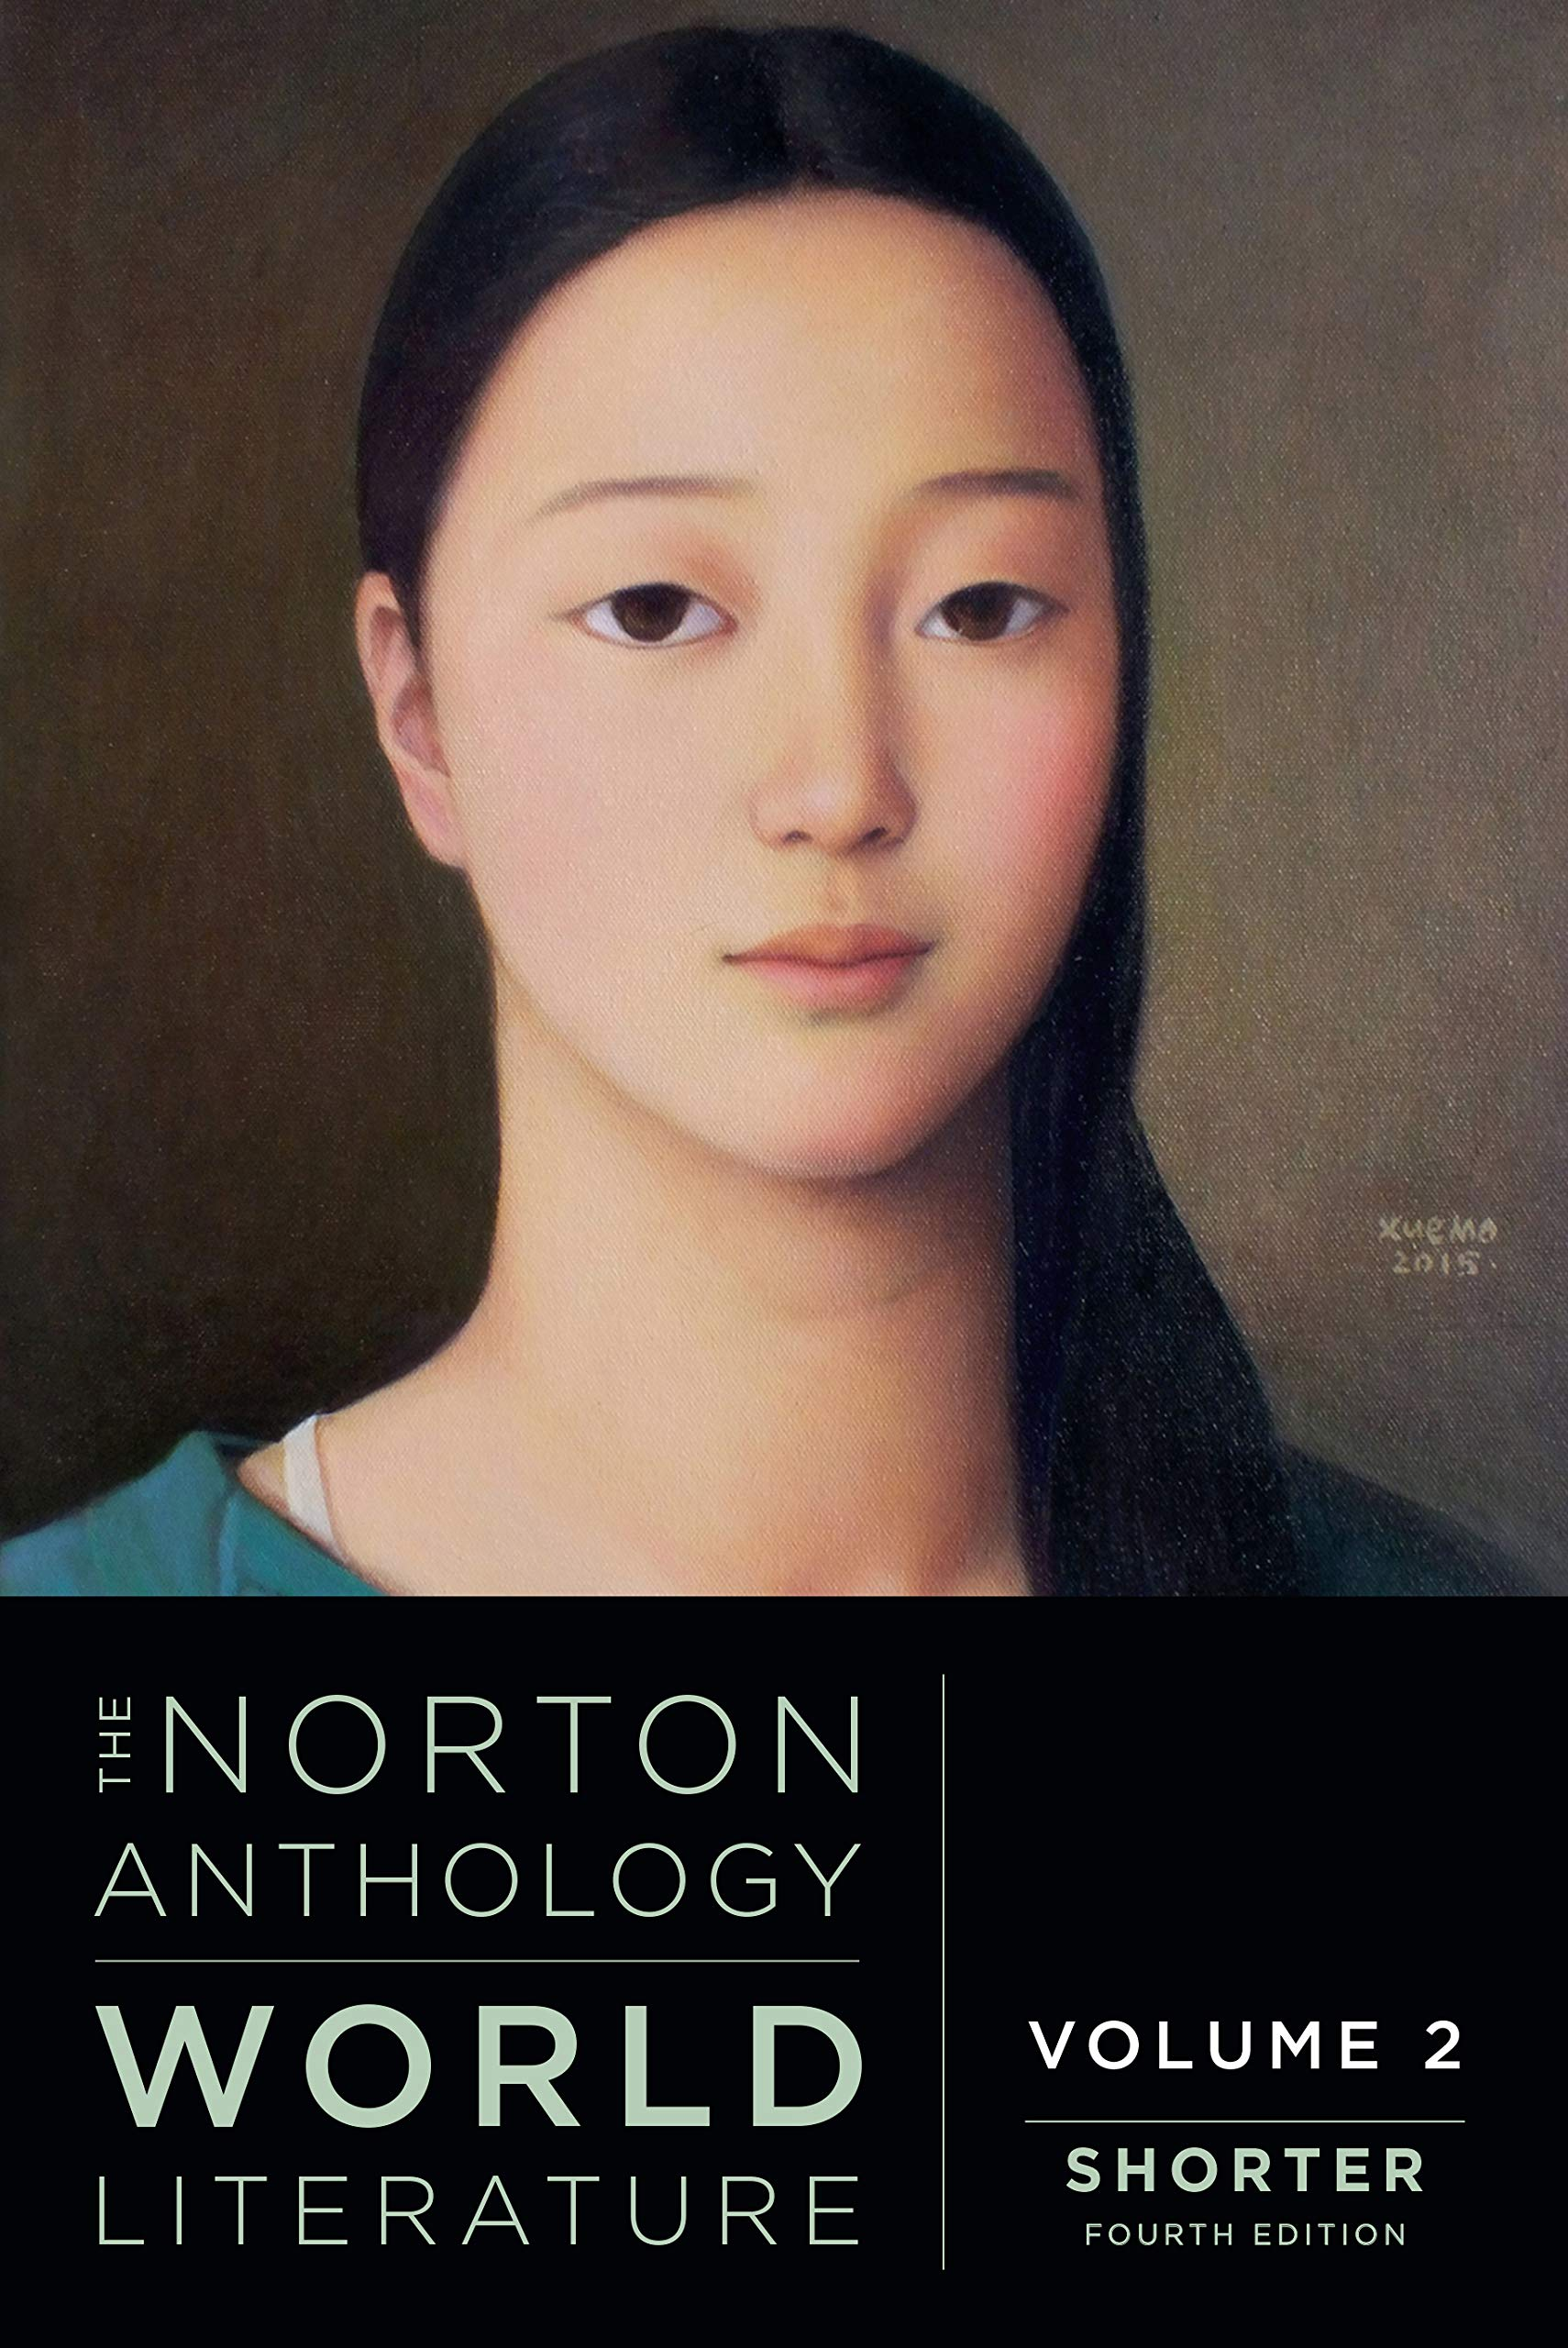 The Norton Anthology Of World Literature Shorter Fourth Edition Vol 2 Kindle Edition By Puchner Martin Reference Kindle Ebooks Amazon Com